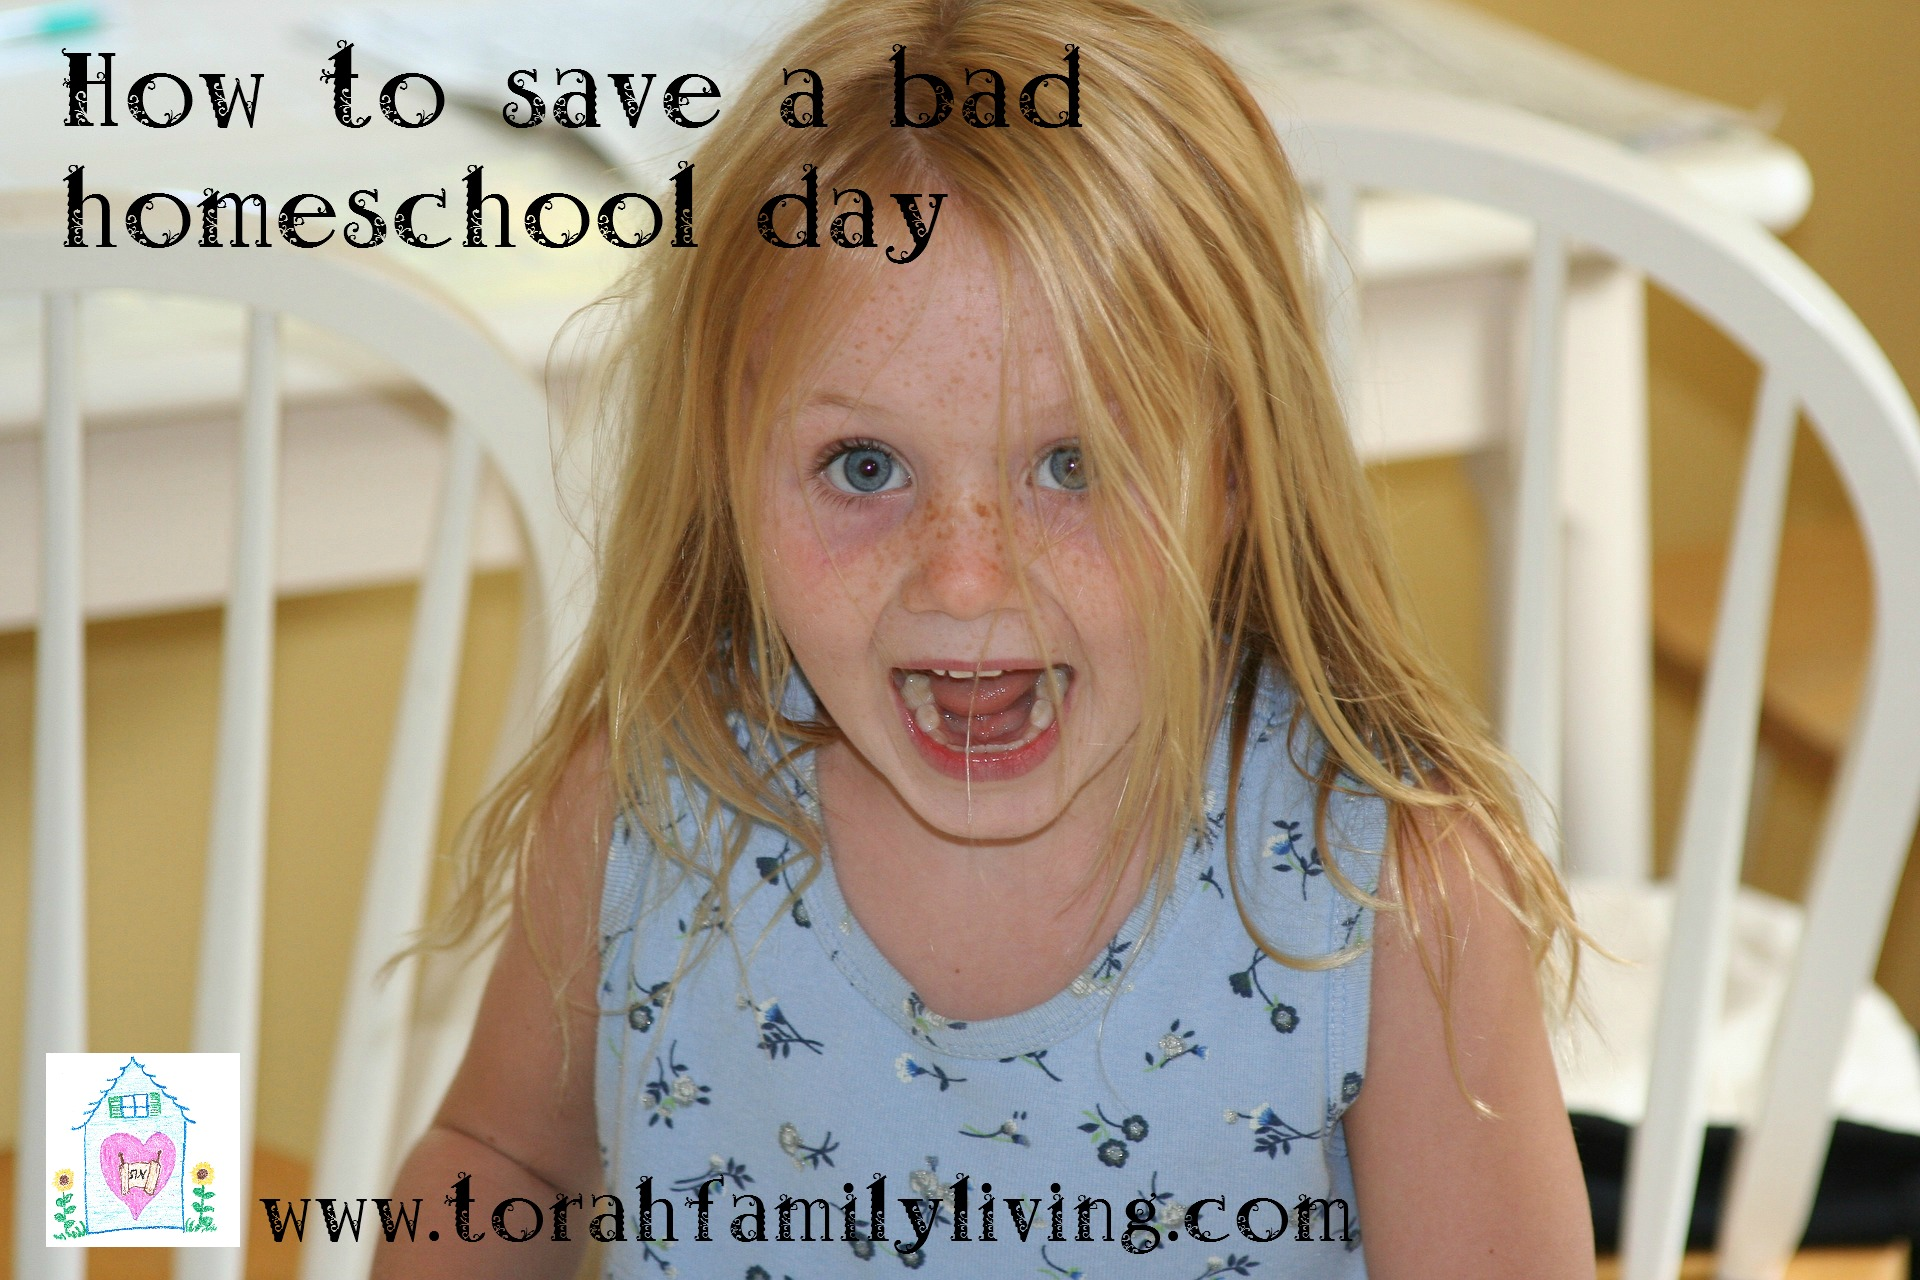 Tag/homeschooling families - How To Save A Homeschool Day Gone Bad